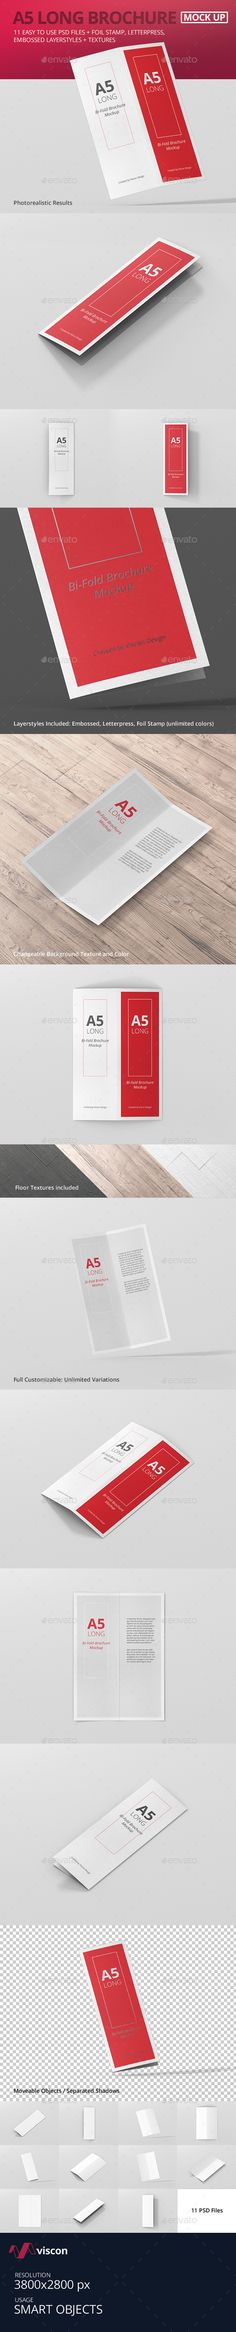 A5 Long Bi-Fold Brochure Mock-Up #graphicdesign #stationary #branding #identity #brochure #design